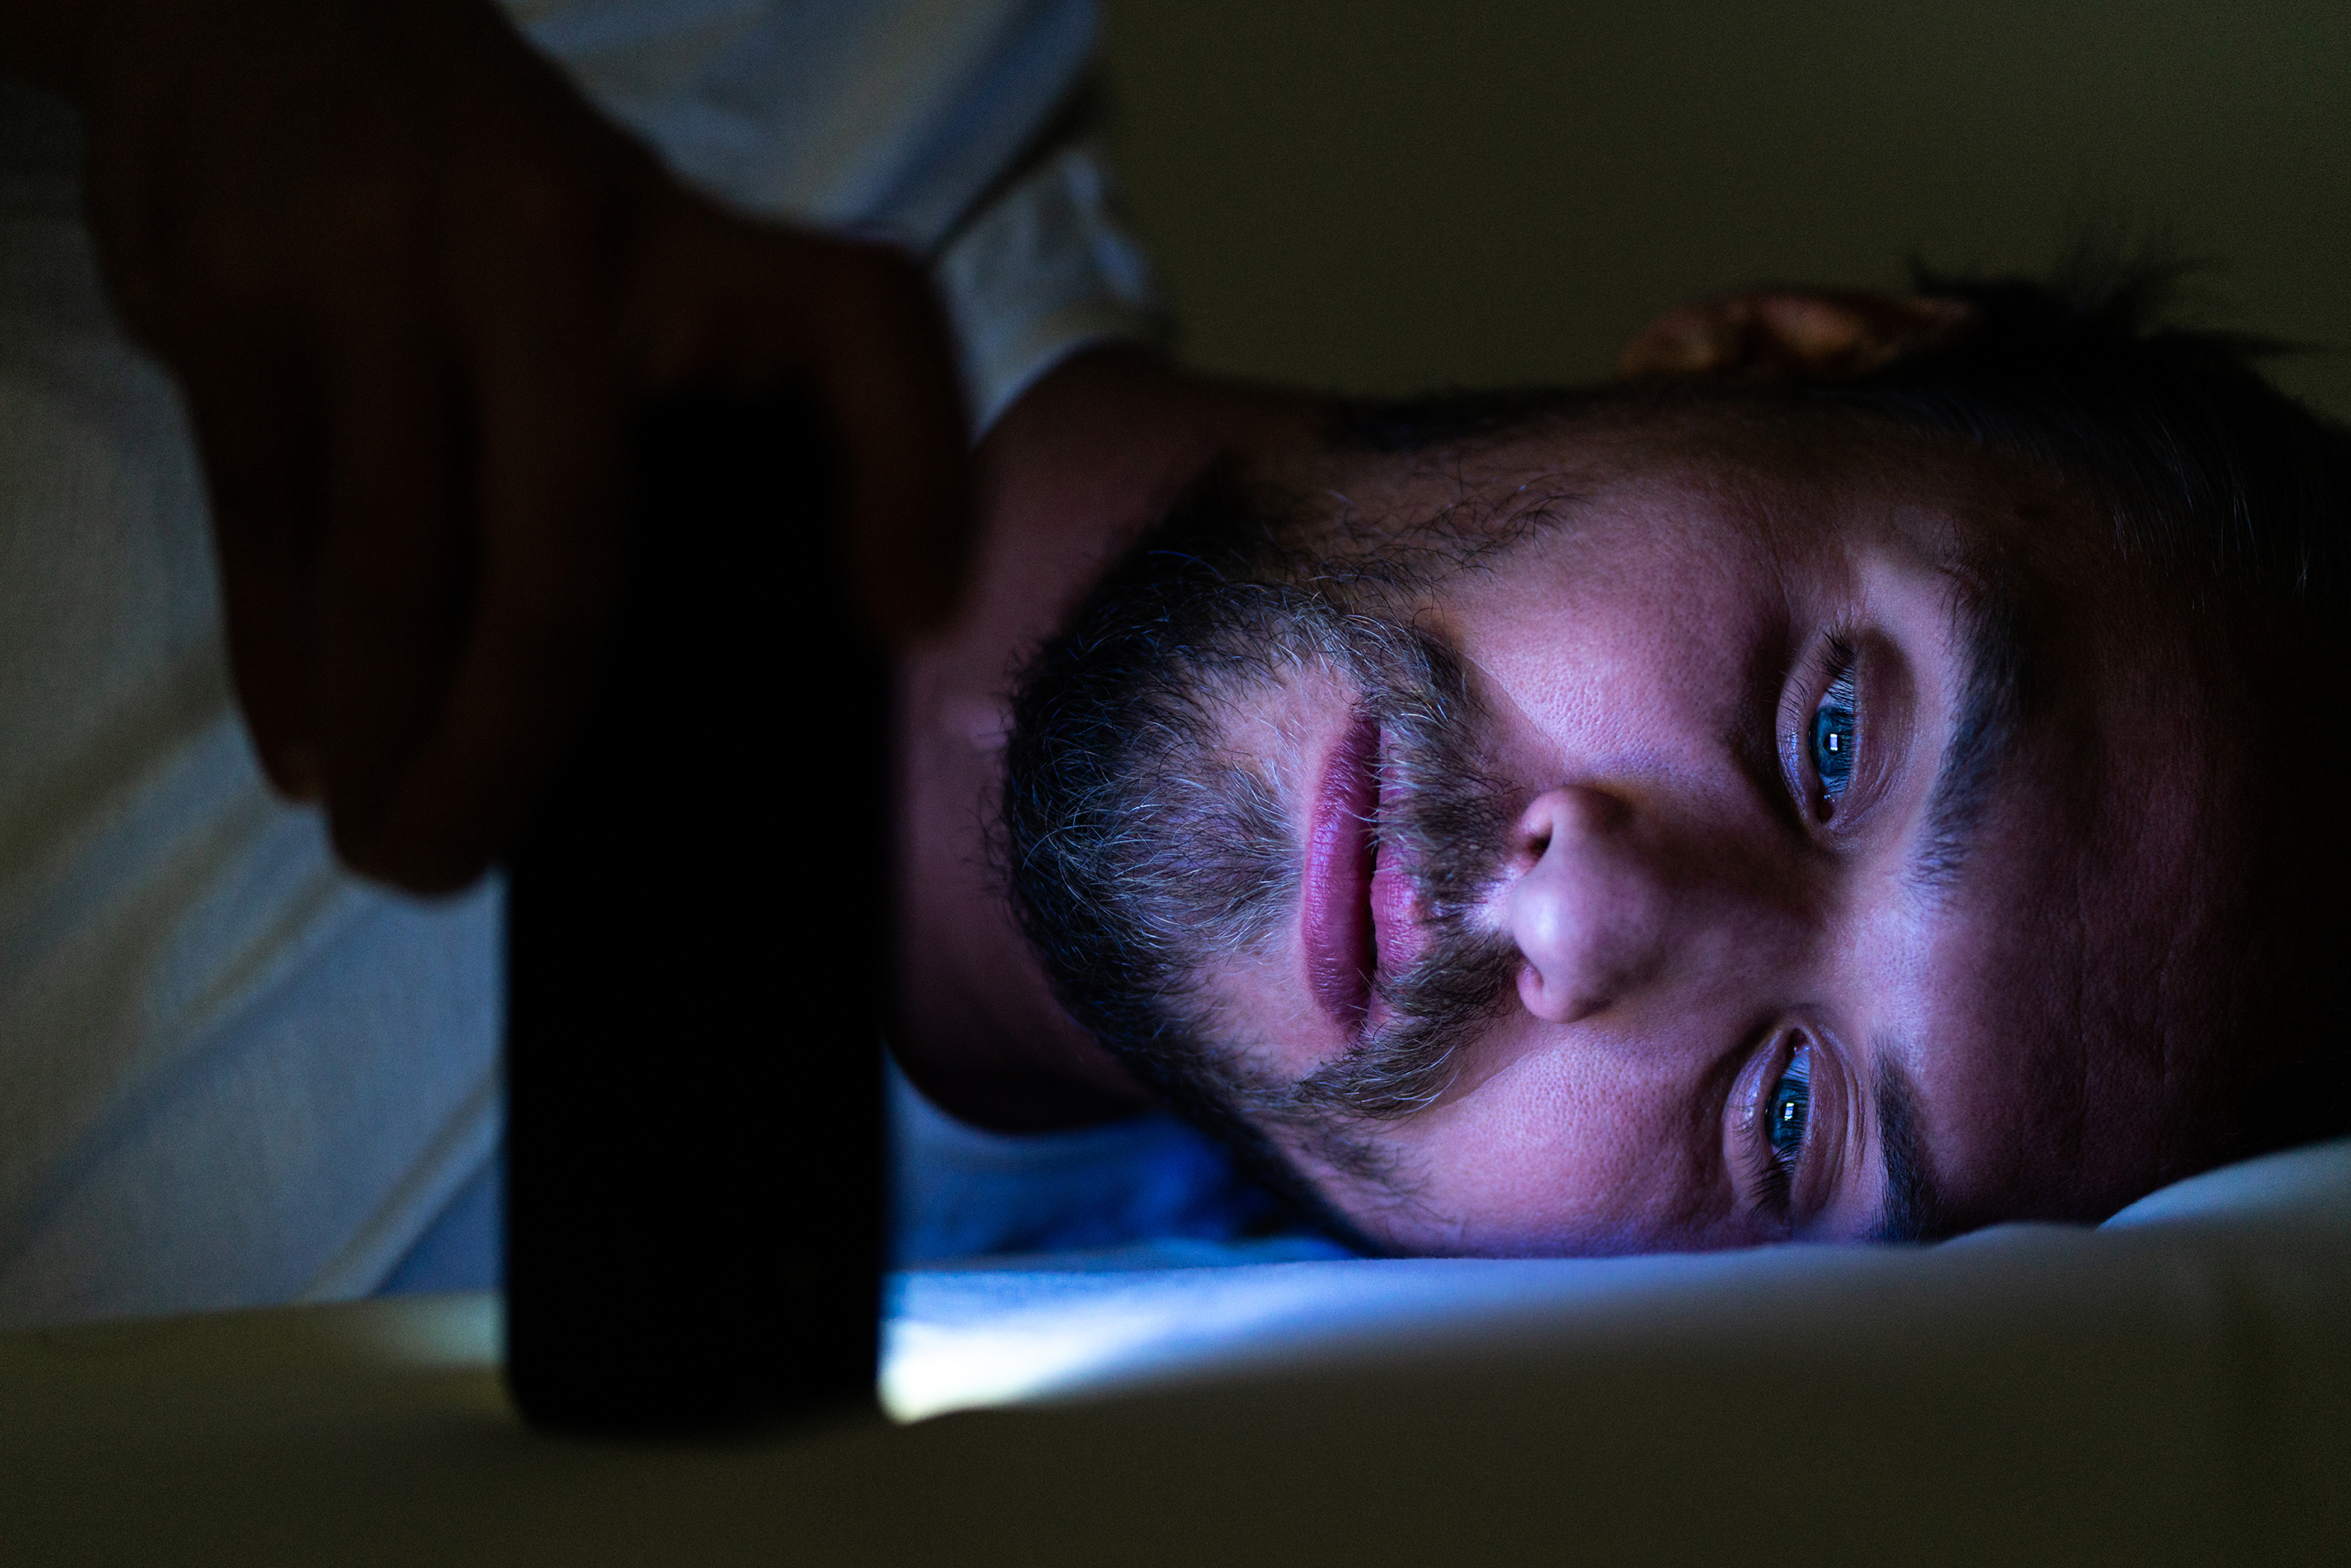 Sleepless man in bed holding his mobile phone